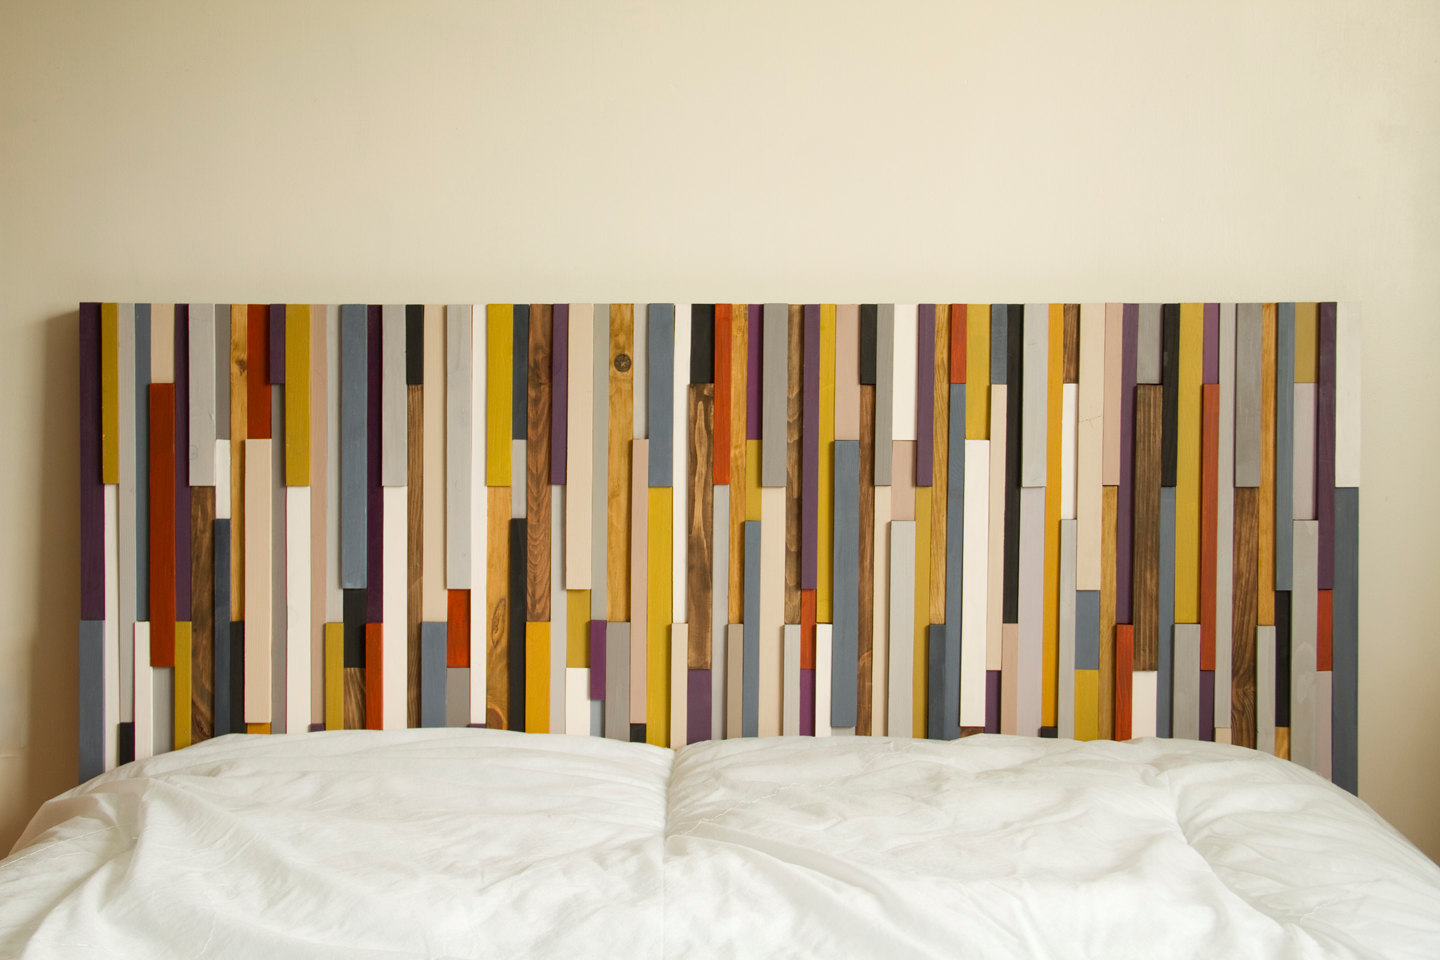 Reclaimed Wood Art, wood wall art sculpture, painted wood art pieces, 24 x 64, headboard, mustard, aubergine, beige, walnut, yew, oak